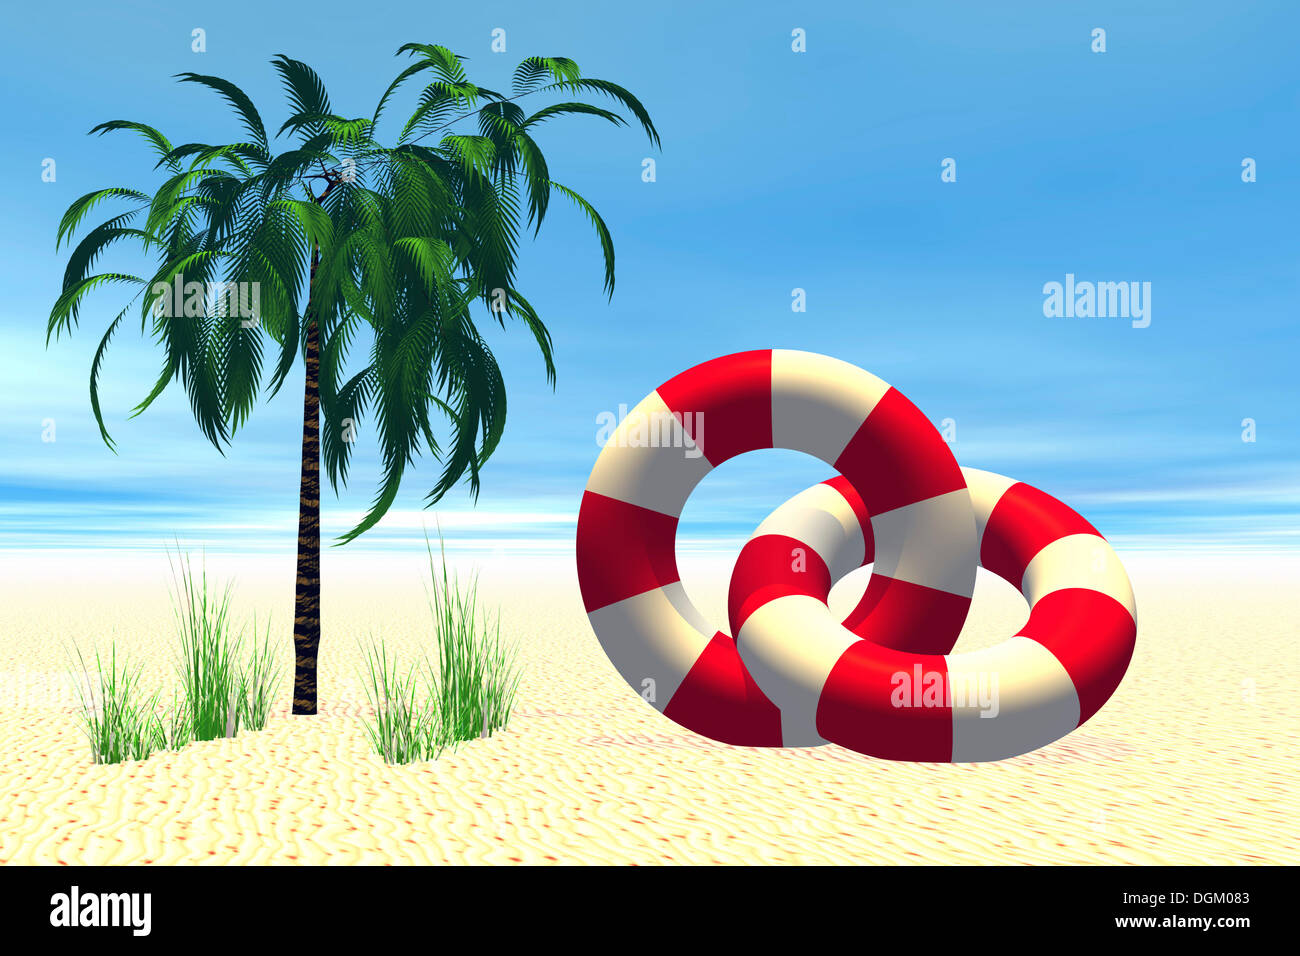 Two life buoys and a palm tree, 3D computer graphics - Stock Image